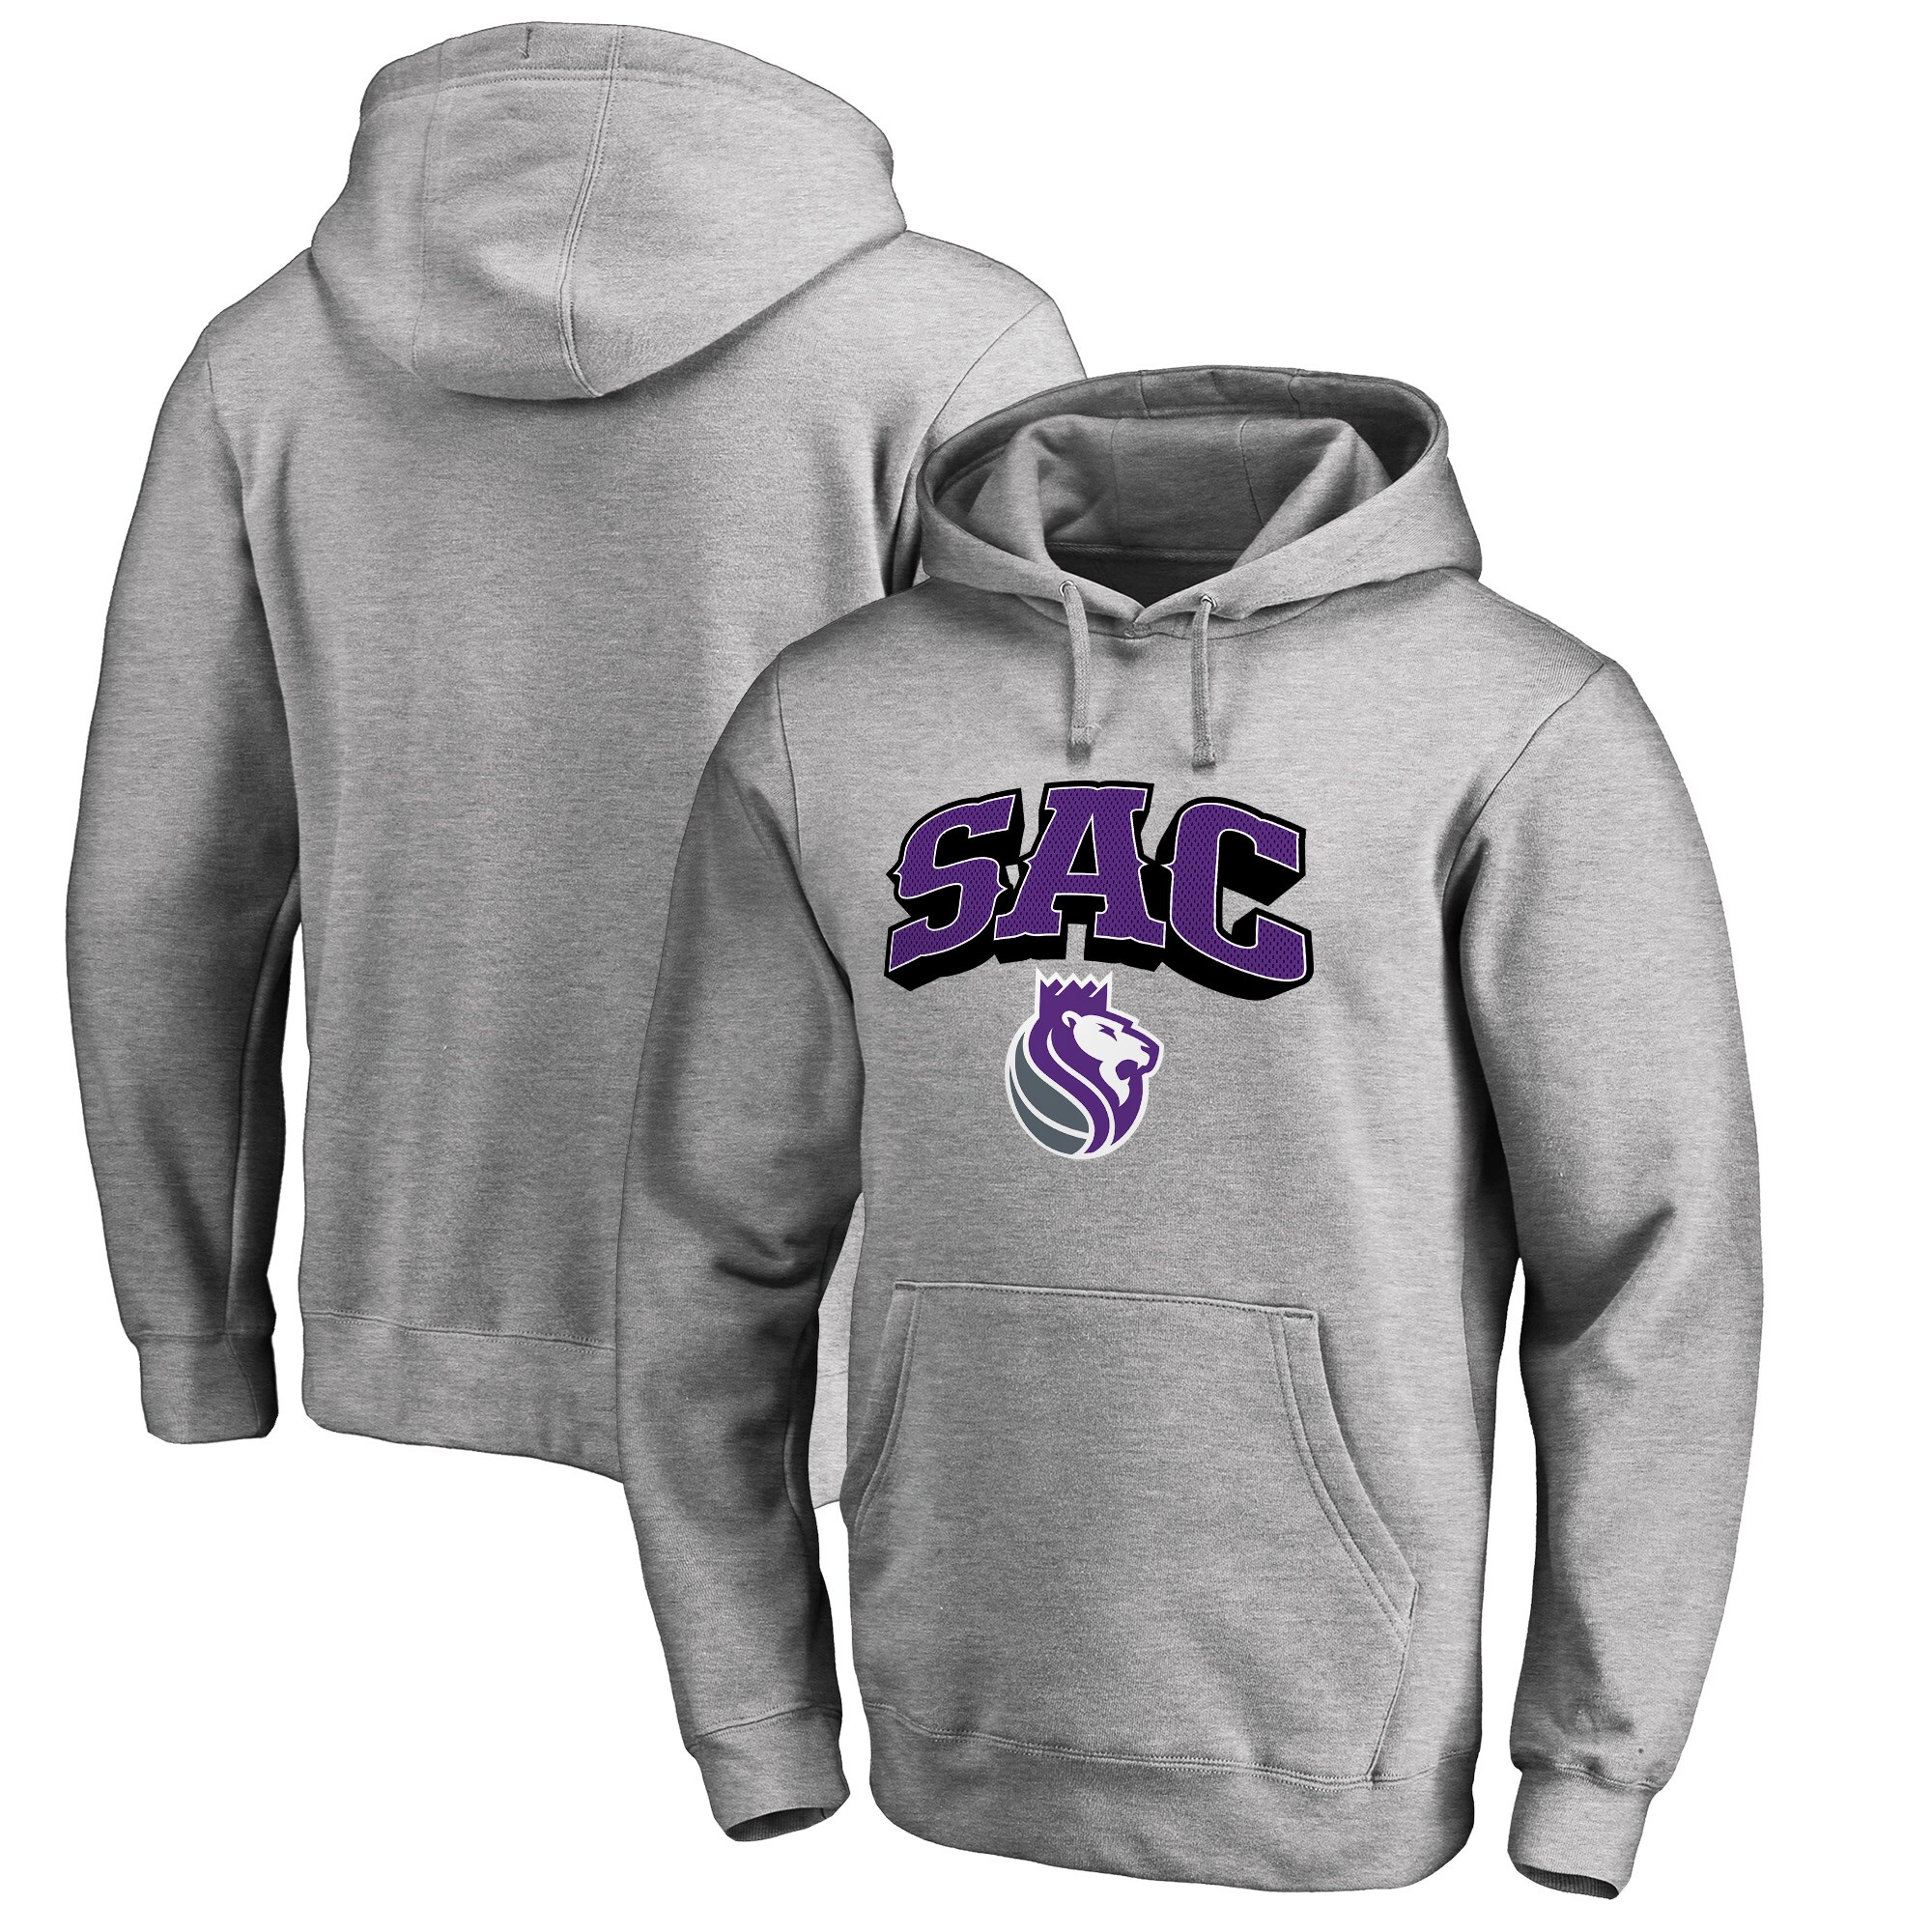 Sacramento Kings Fanatics Branded Big & Tall Sac Hometown Collection Pullover Hoodie - Heathered Gray